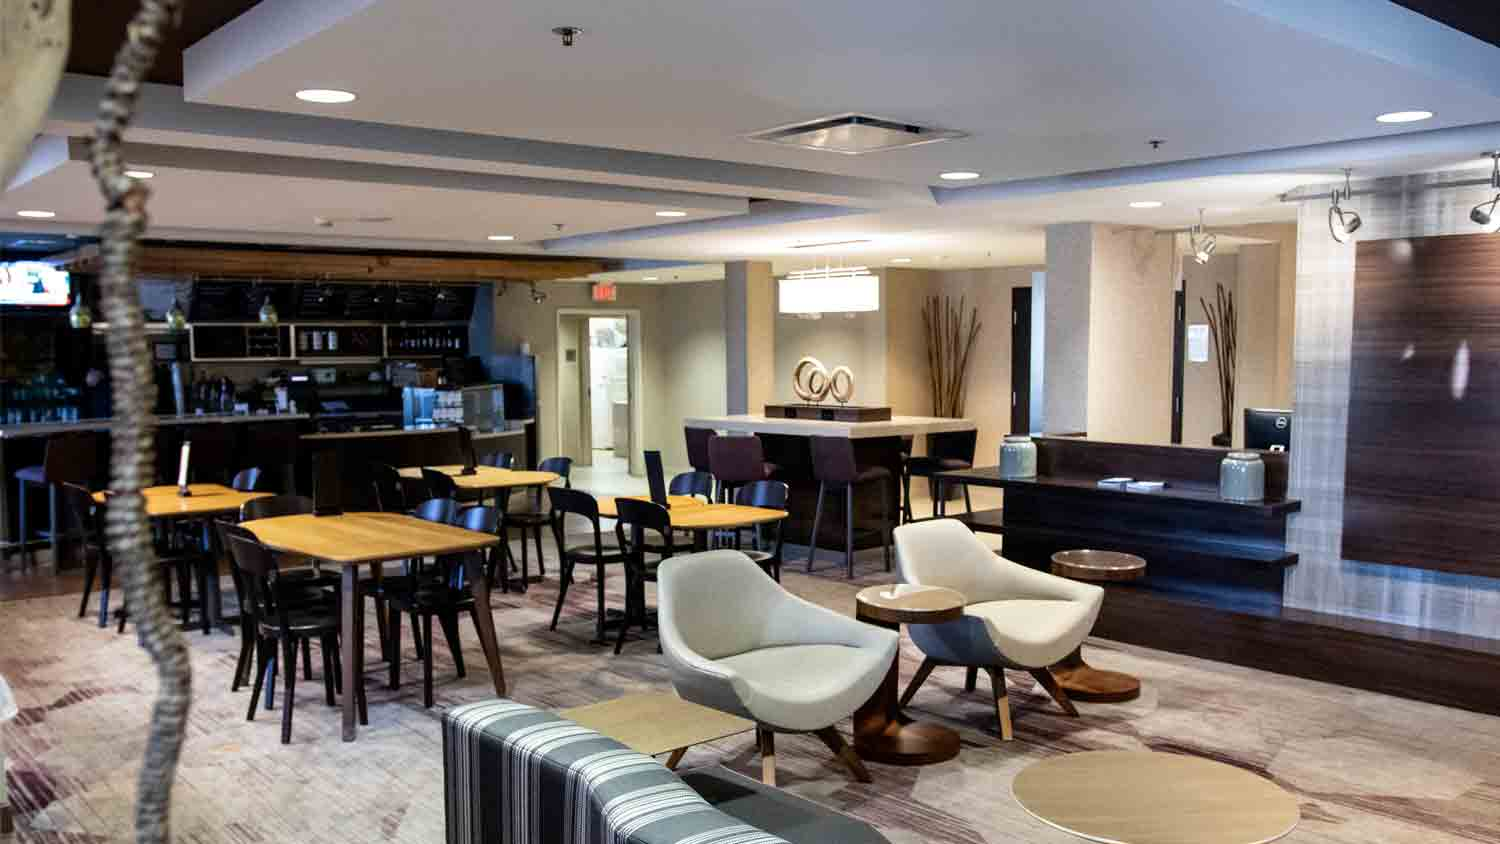 Courtyard by Marriott Indianapolis South 4